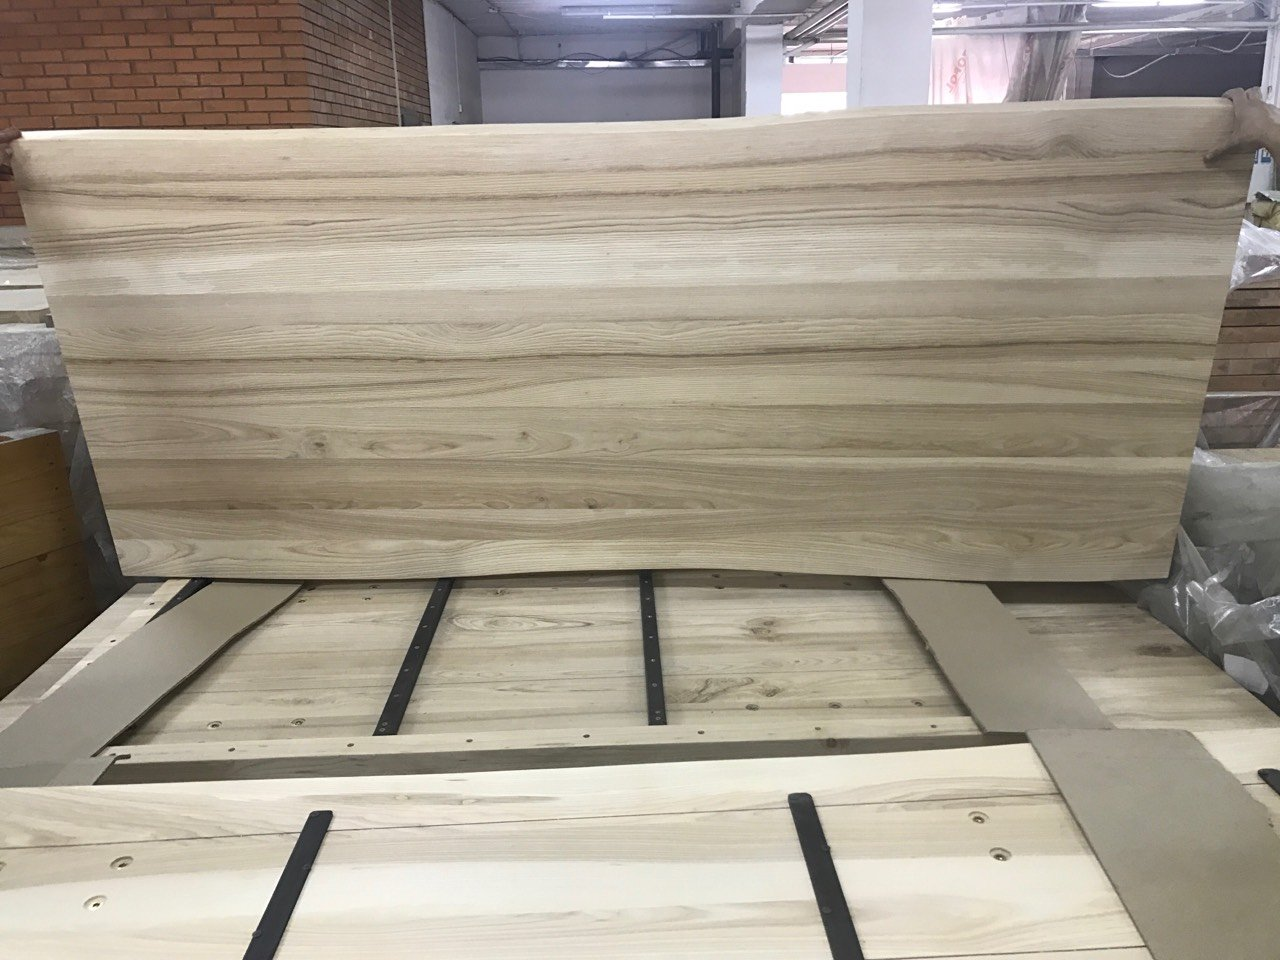 Manufacture of wooden furniture